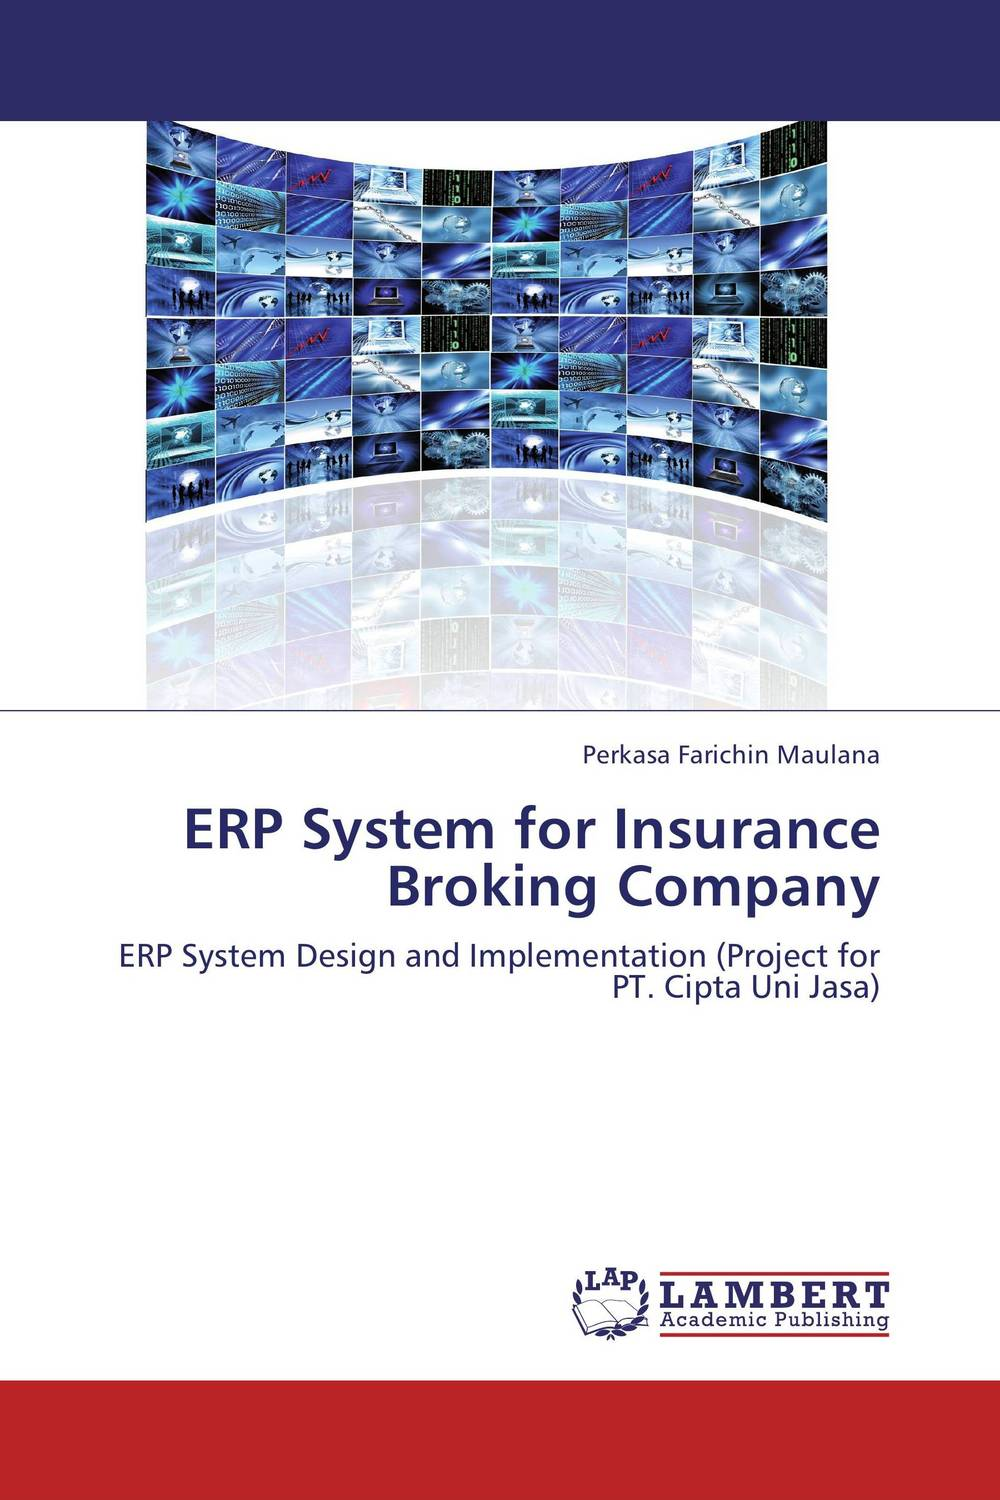 ERP System for Insurance Broking Company tony boobier analytics for insurance the real business of big data